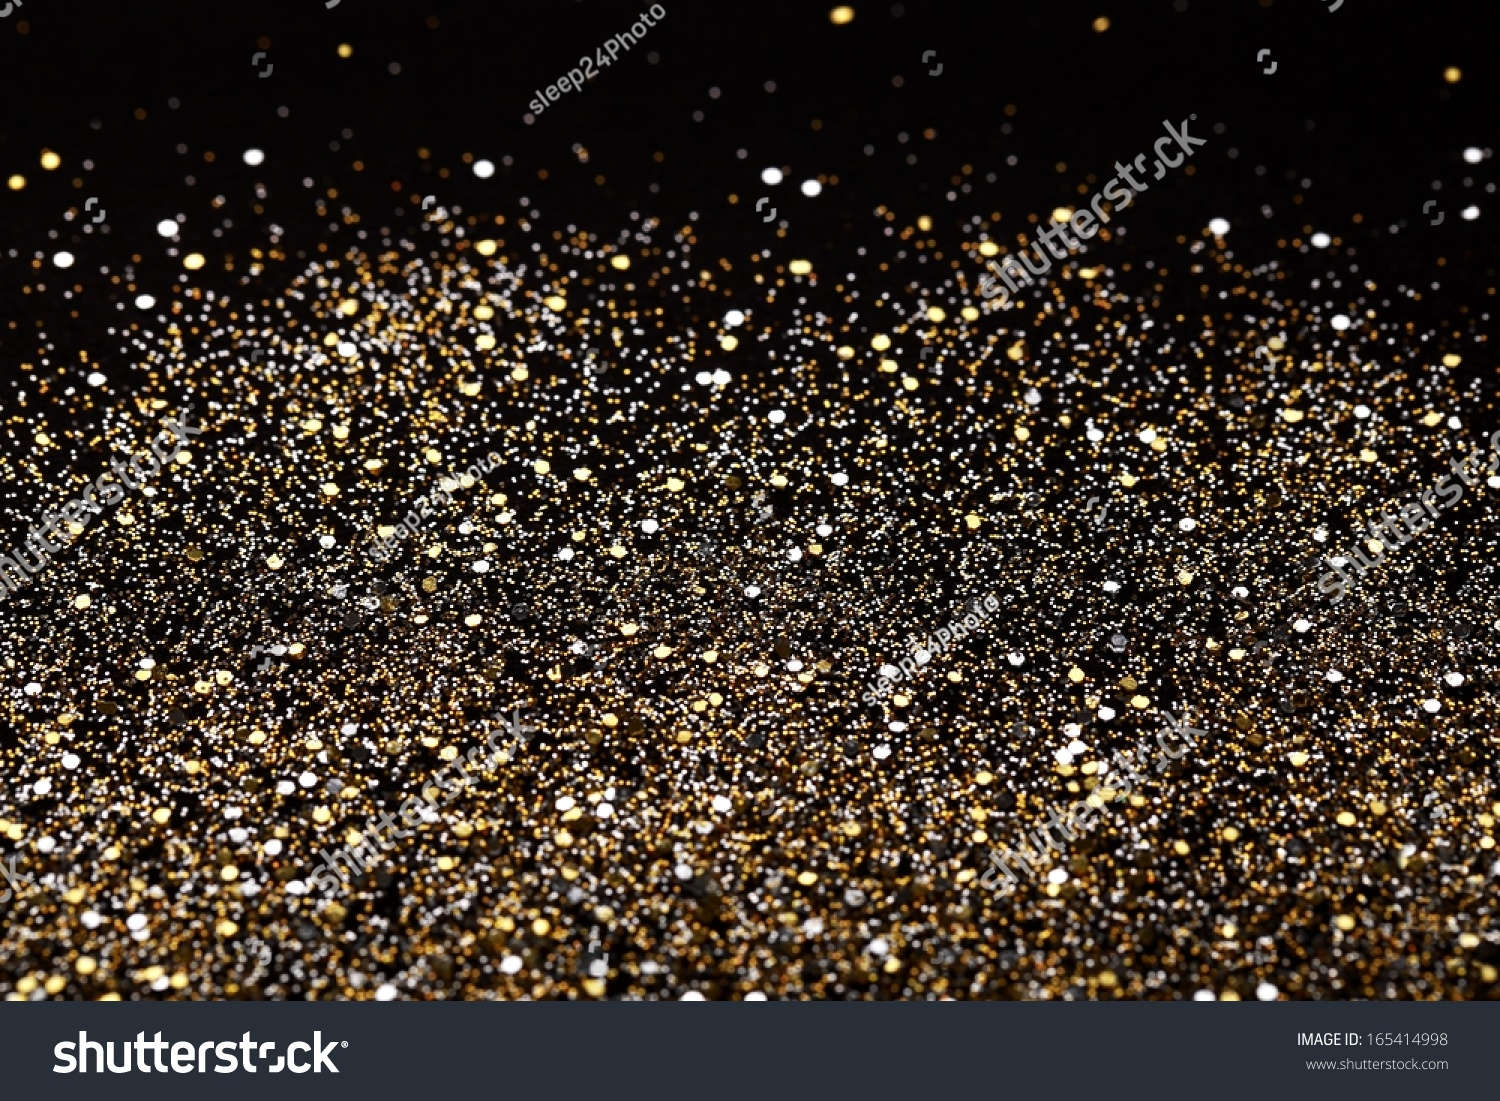 Christmas Gold And Silver Glitter Background. Holiday